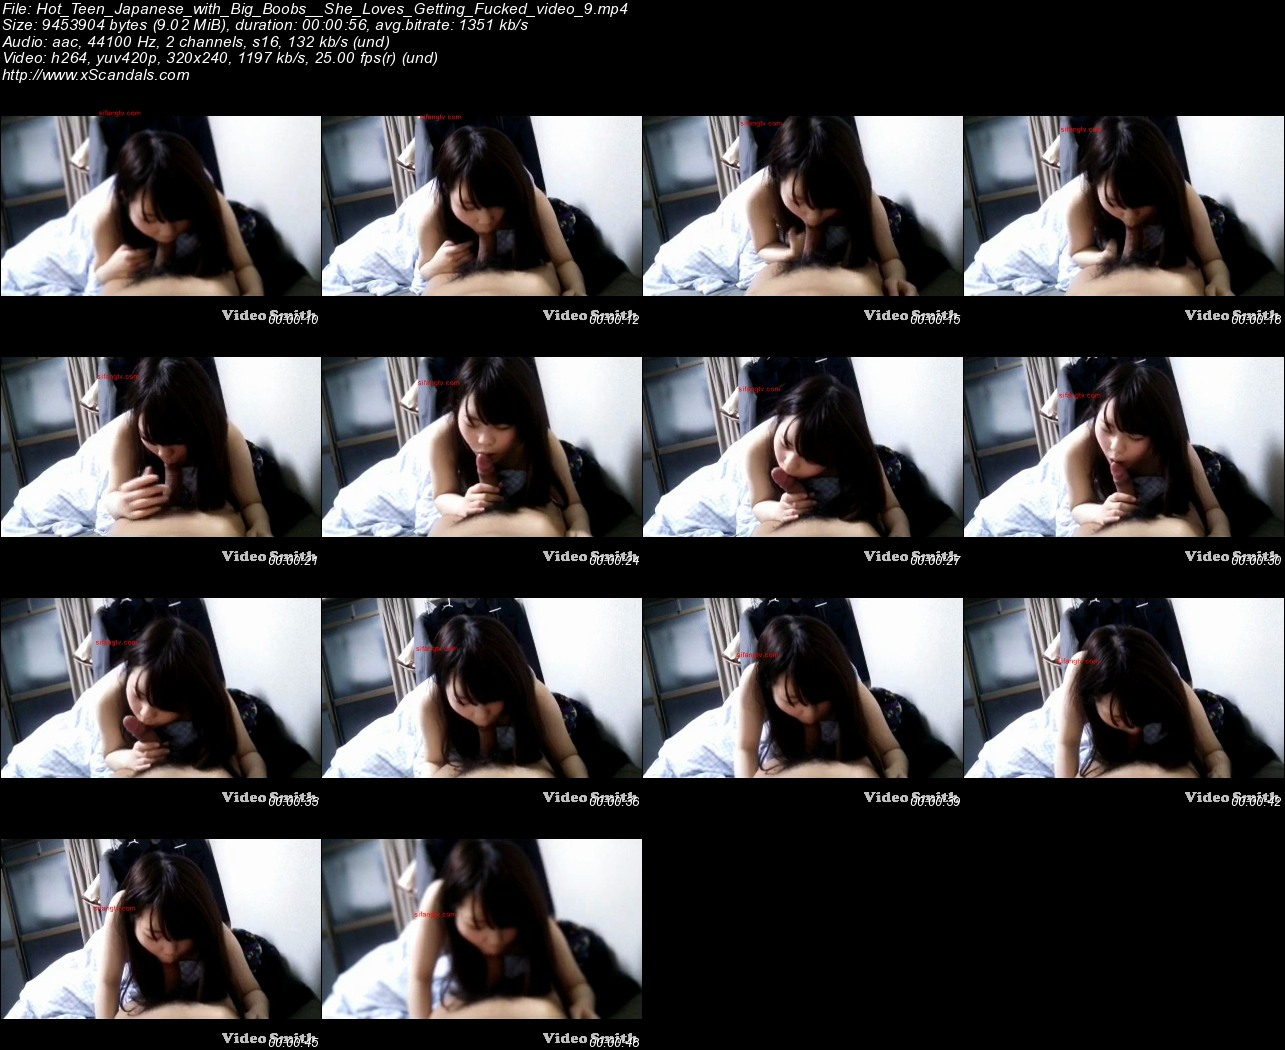 Hot_Teen_Japanese_with_Big_Boobs__She_Loves_Getting_Fucked_video_9.jpeg